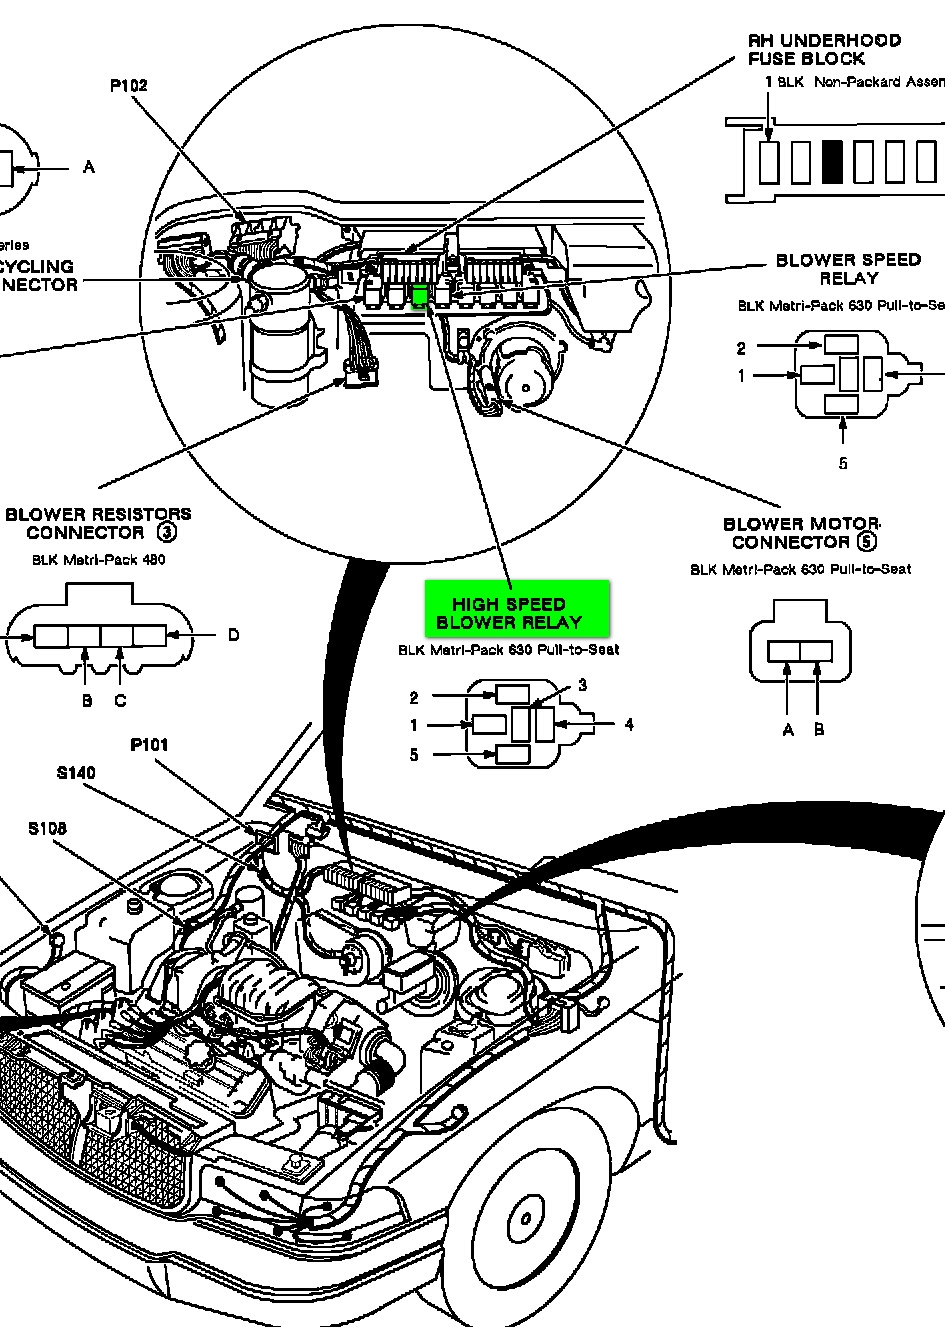 Diagram 1998 Buick Park Avenue Parts Diagram Full Version Hd Quality Parts Diagram Diagramedyep Pcandphone Fr